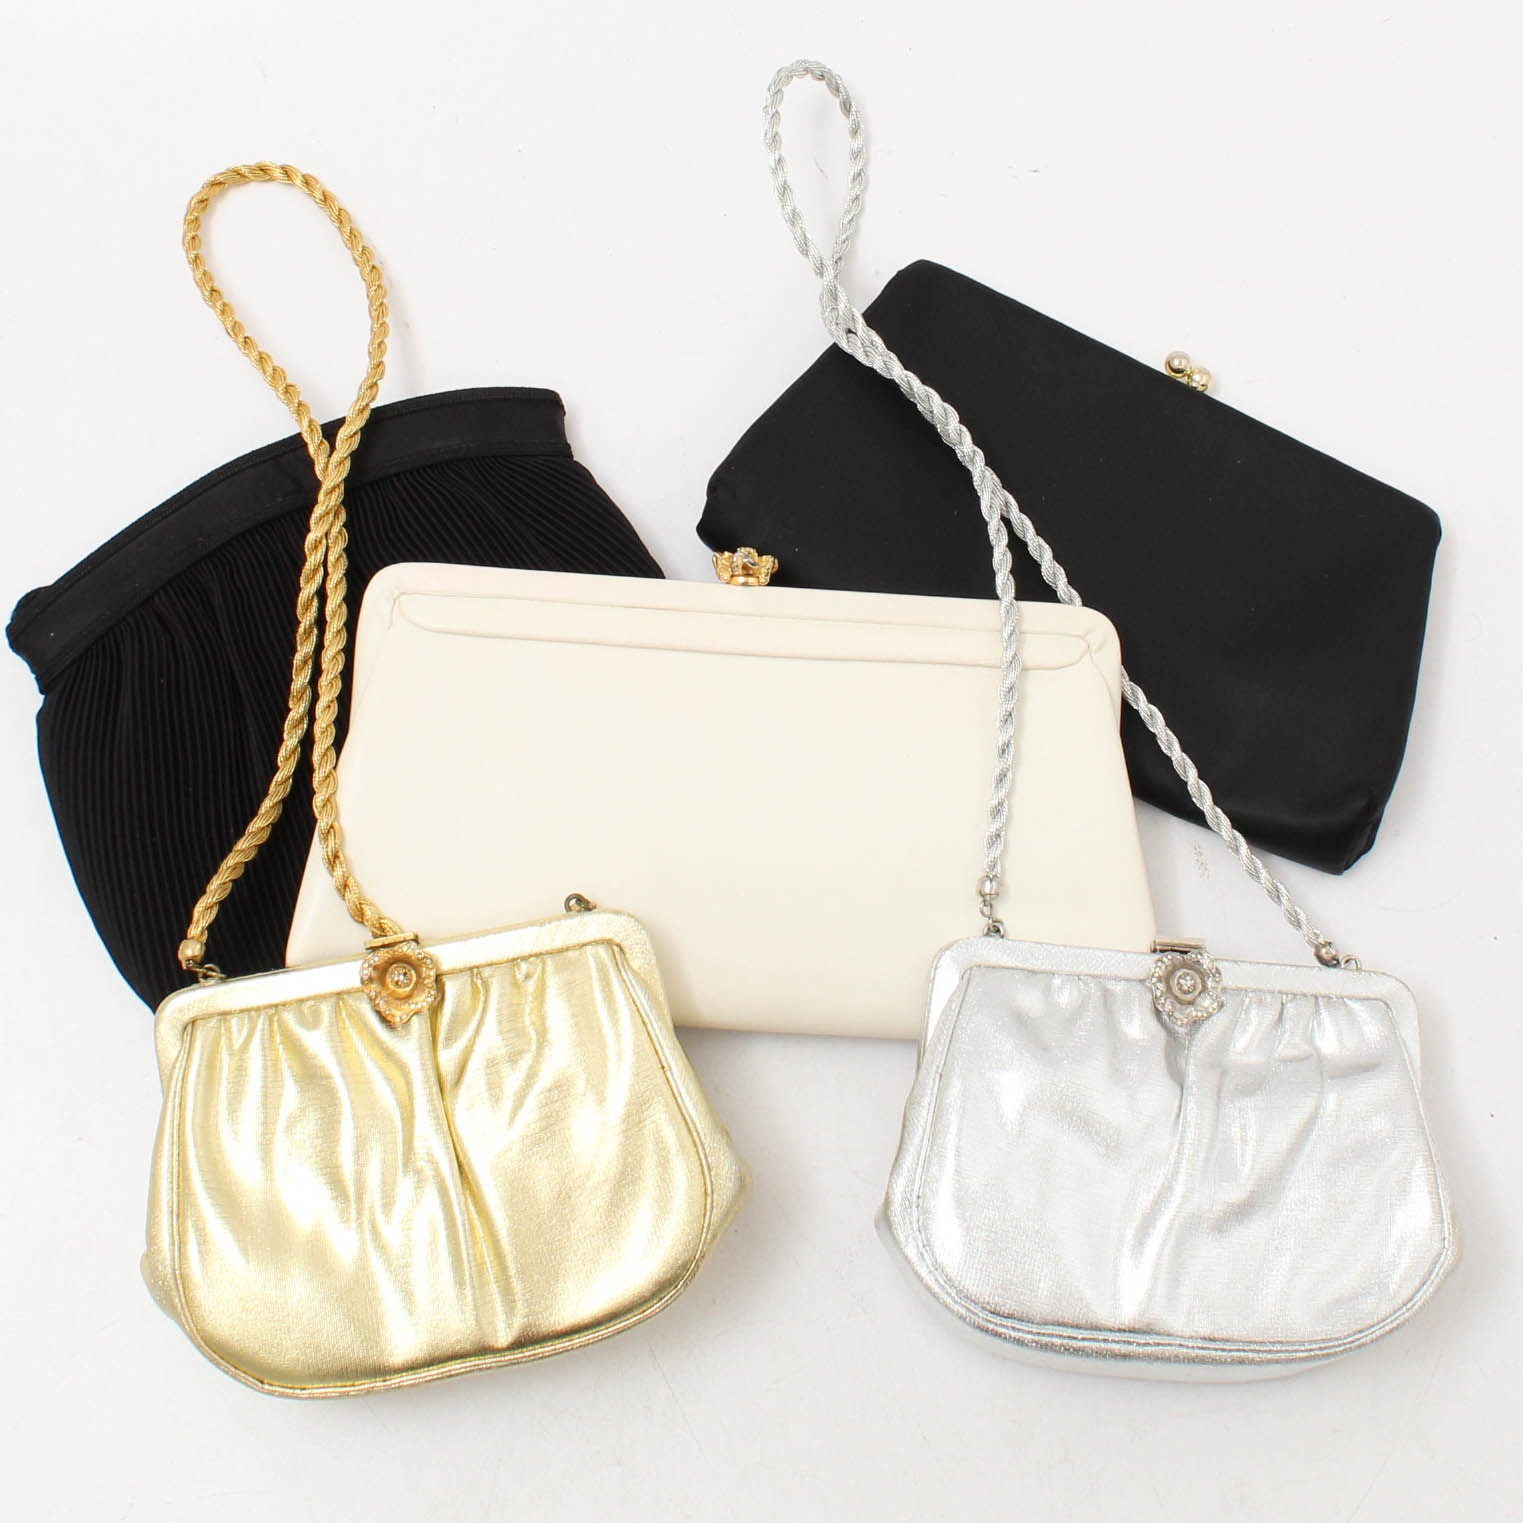 Vintage Evening Bags and Clutches